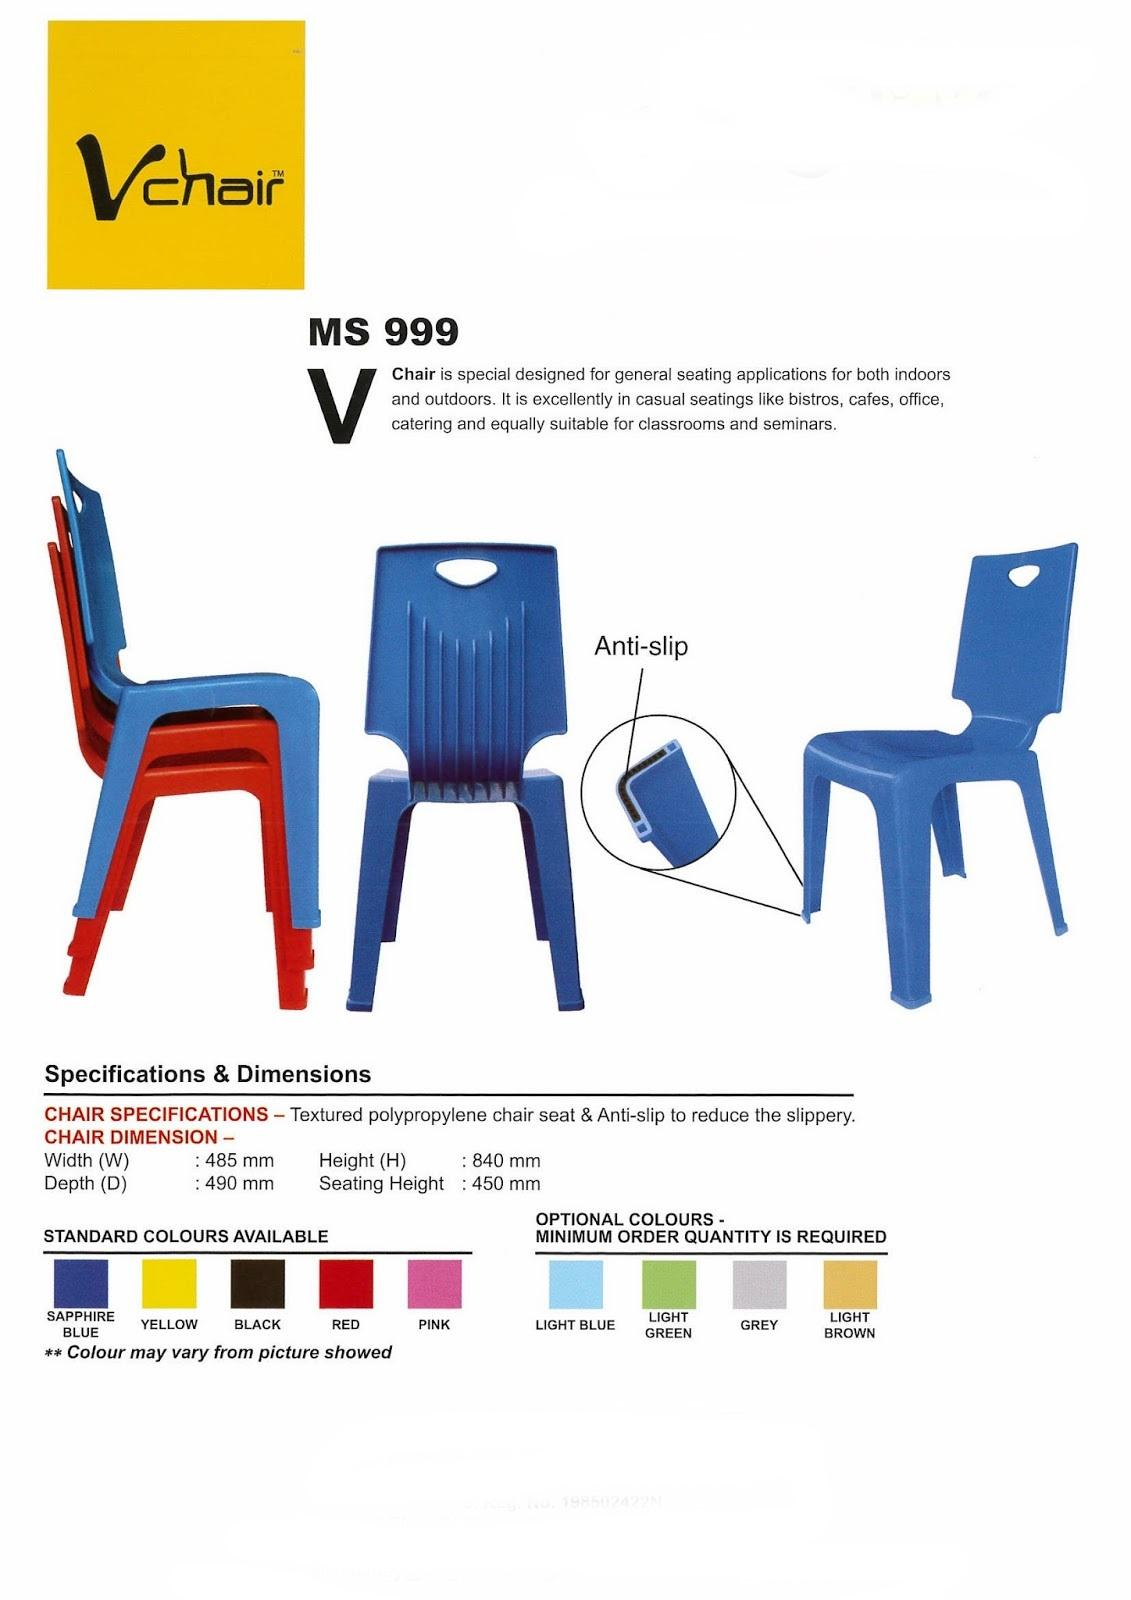 plastic stool chair malaysia cover aliexpress ad free ads 80 000 43 local